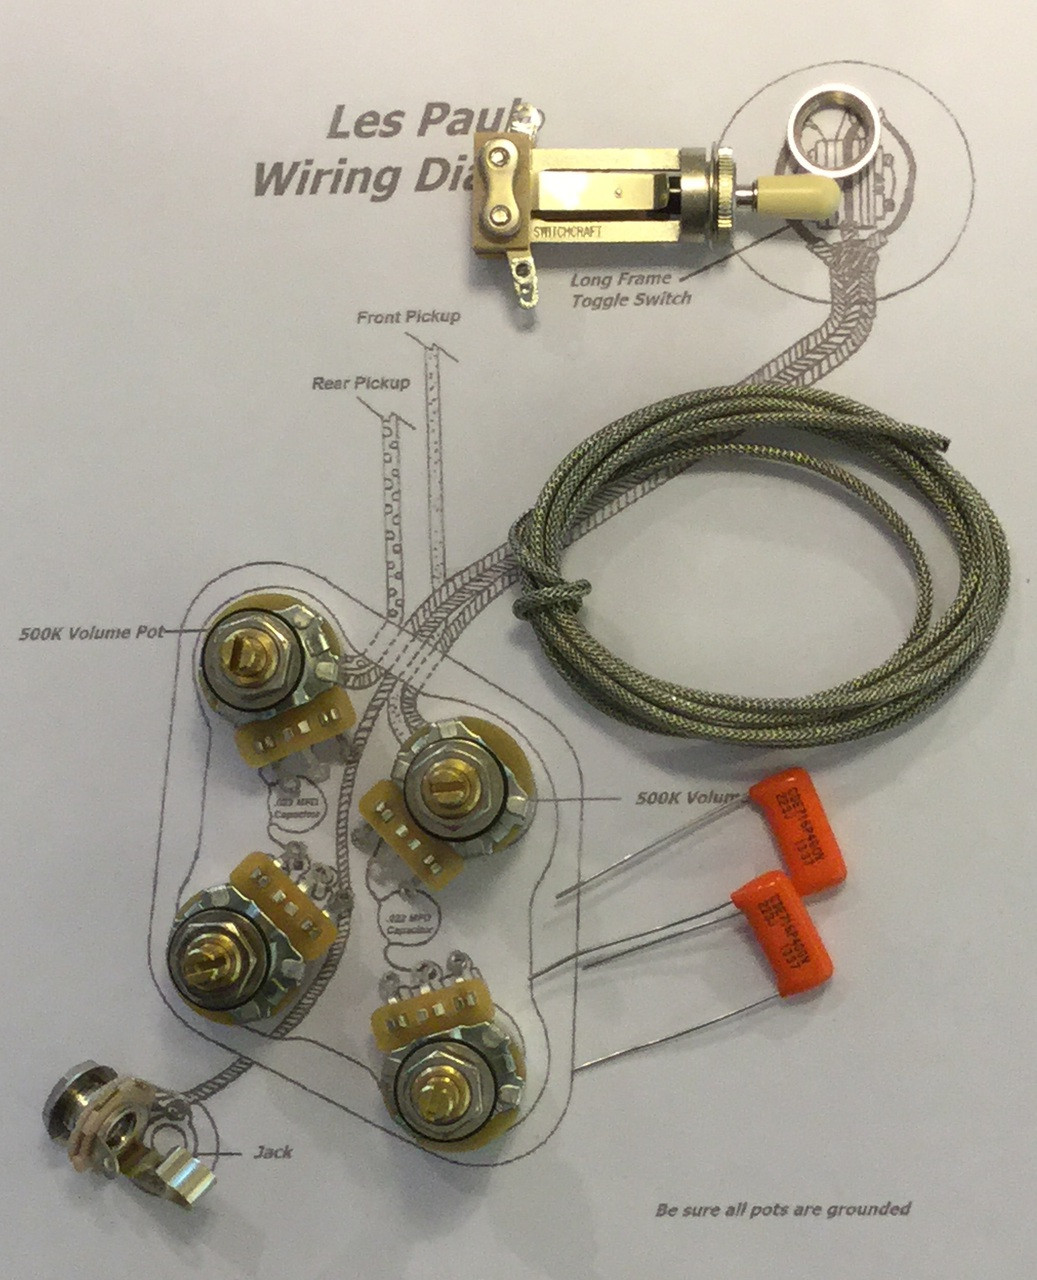 medium resolution of wiring kit gibson les paul long shaft cts taot 500kxl pots les paul wiring diagram 50 s les paul wiring kit